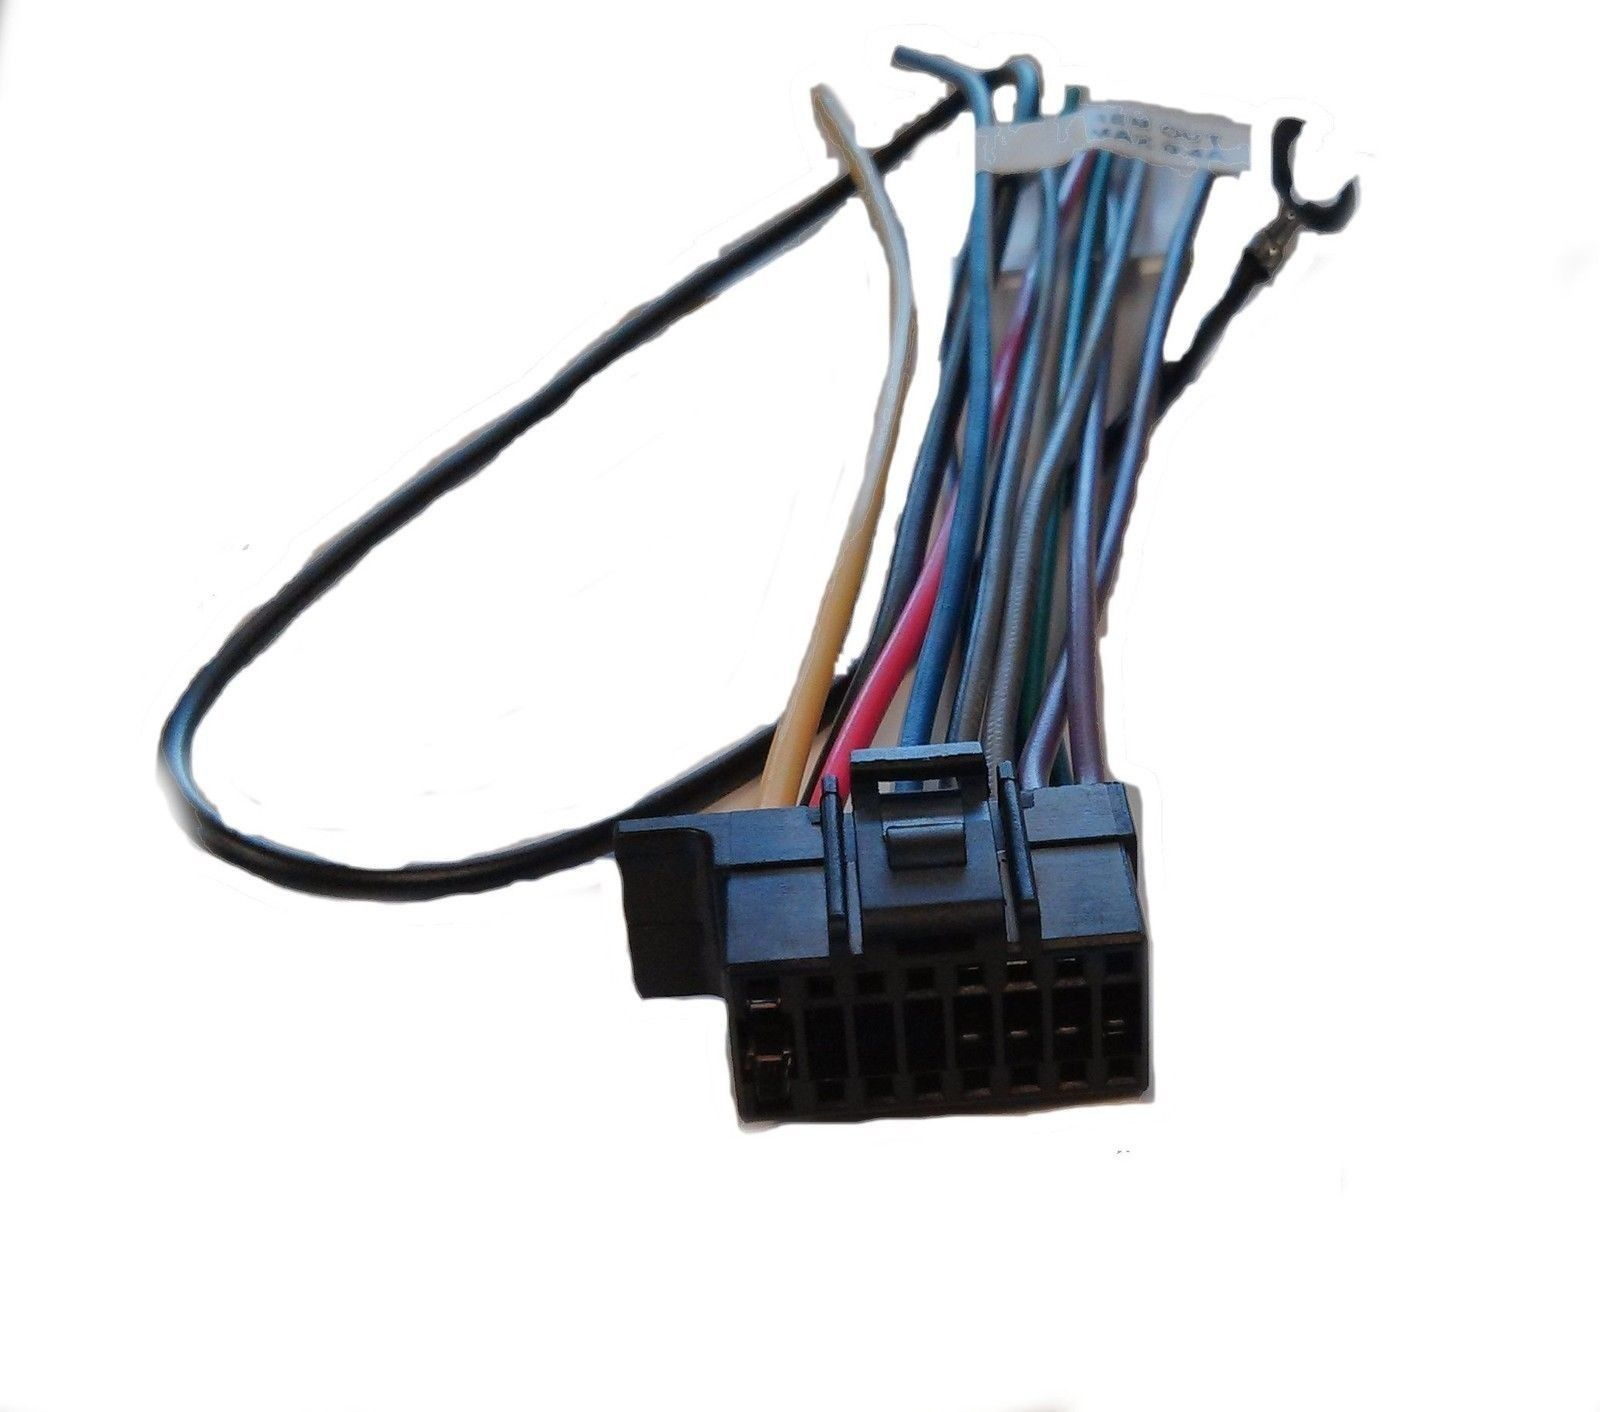 58 Sony Wire Harness Cdxgt270mp Cdxgt570up Mexbt3100p Mexbt31pw Cdx Gt270mp Ebay Electronics